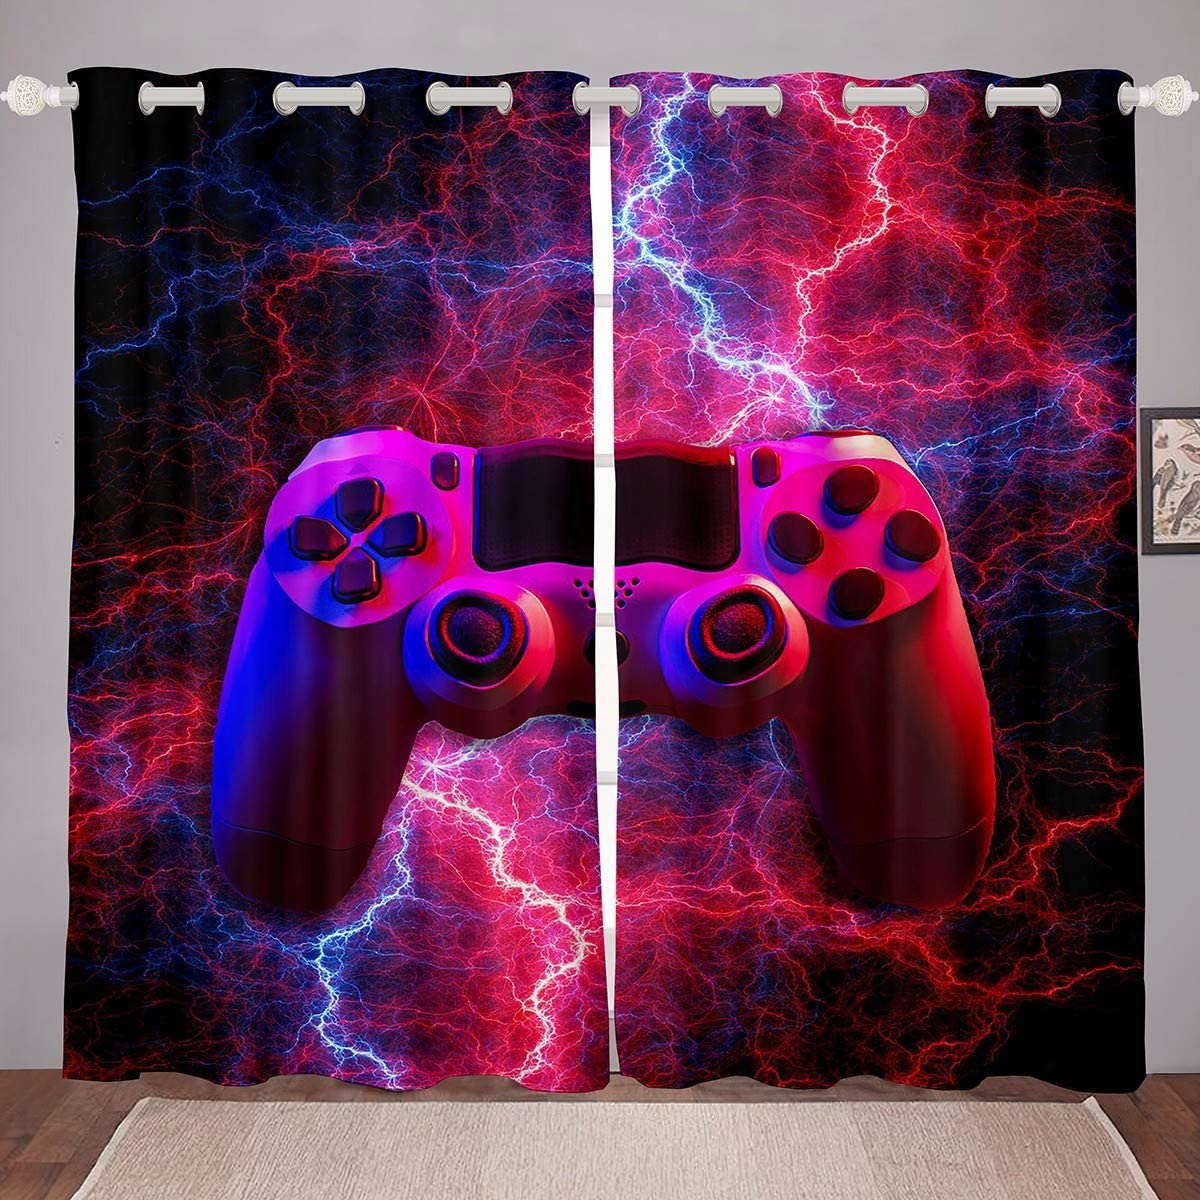 Feelyou 3D Print All Max 81% OFF items free shipping Gamer Curtains for Gami Room Red Bedroom Living